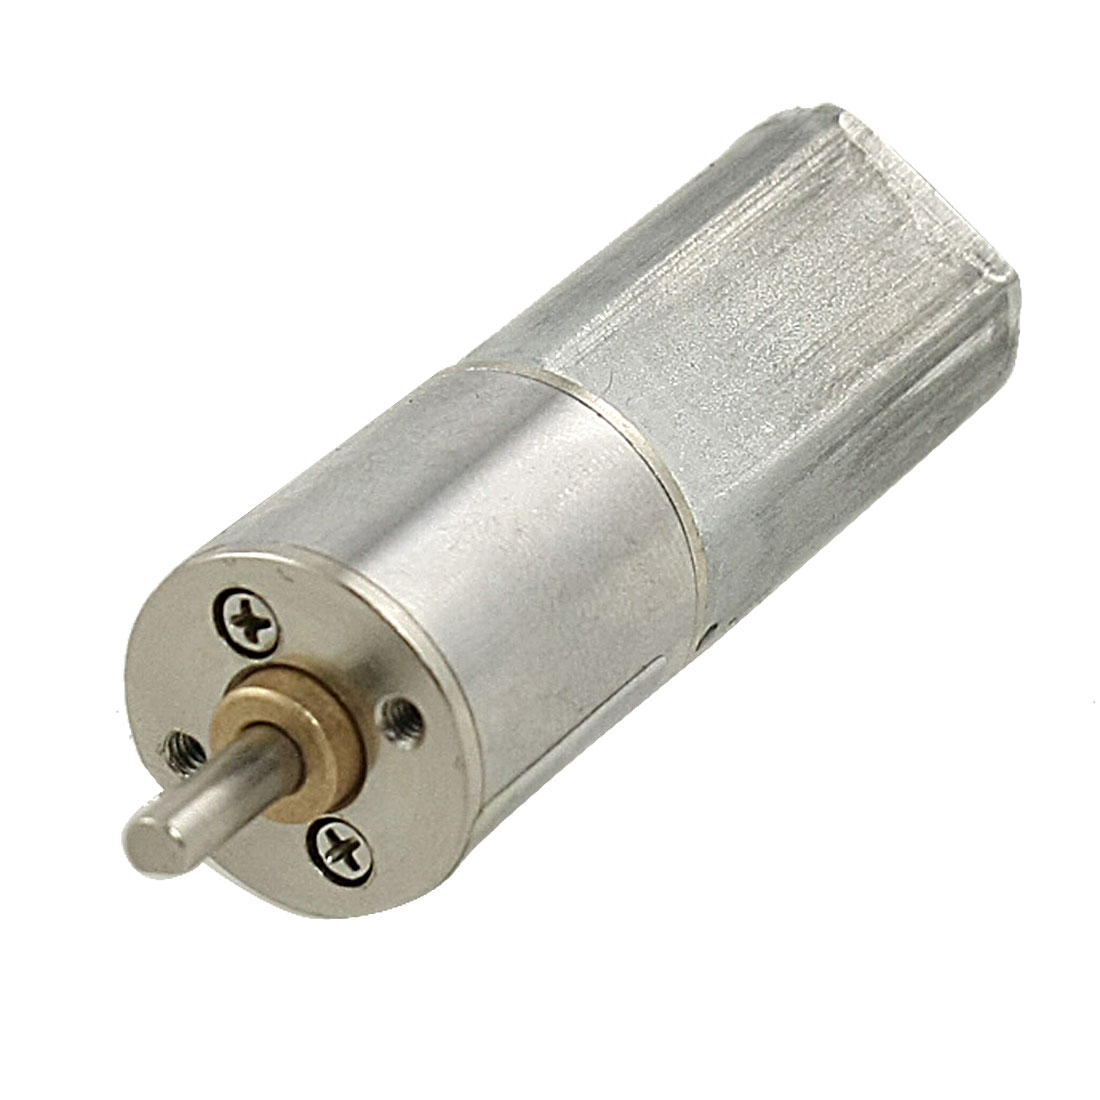 10RPM 12V 0.55A High Torque Mini Electric DC Geared Motor